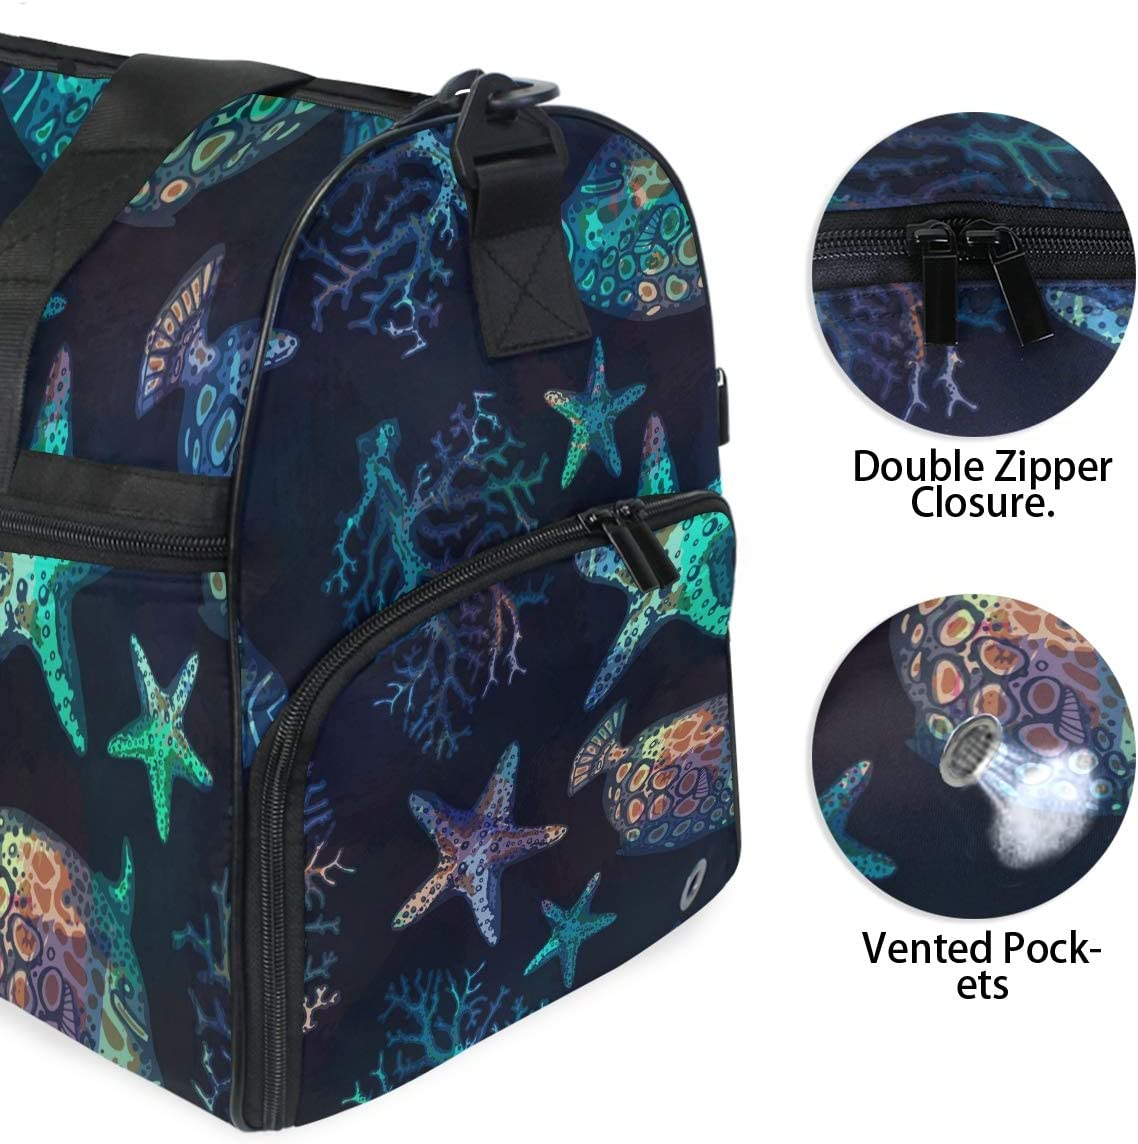 FAJRO Gym Bag Travel Duffel Express Weekender Bag Exotic Fishes Corals And Starfishes Photos Carry On Luggage with Shoe Pouch